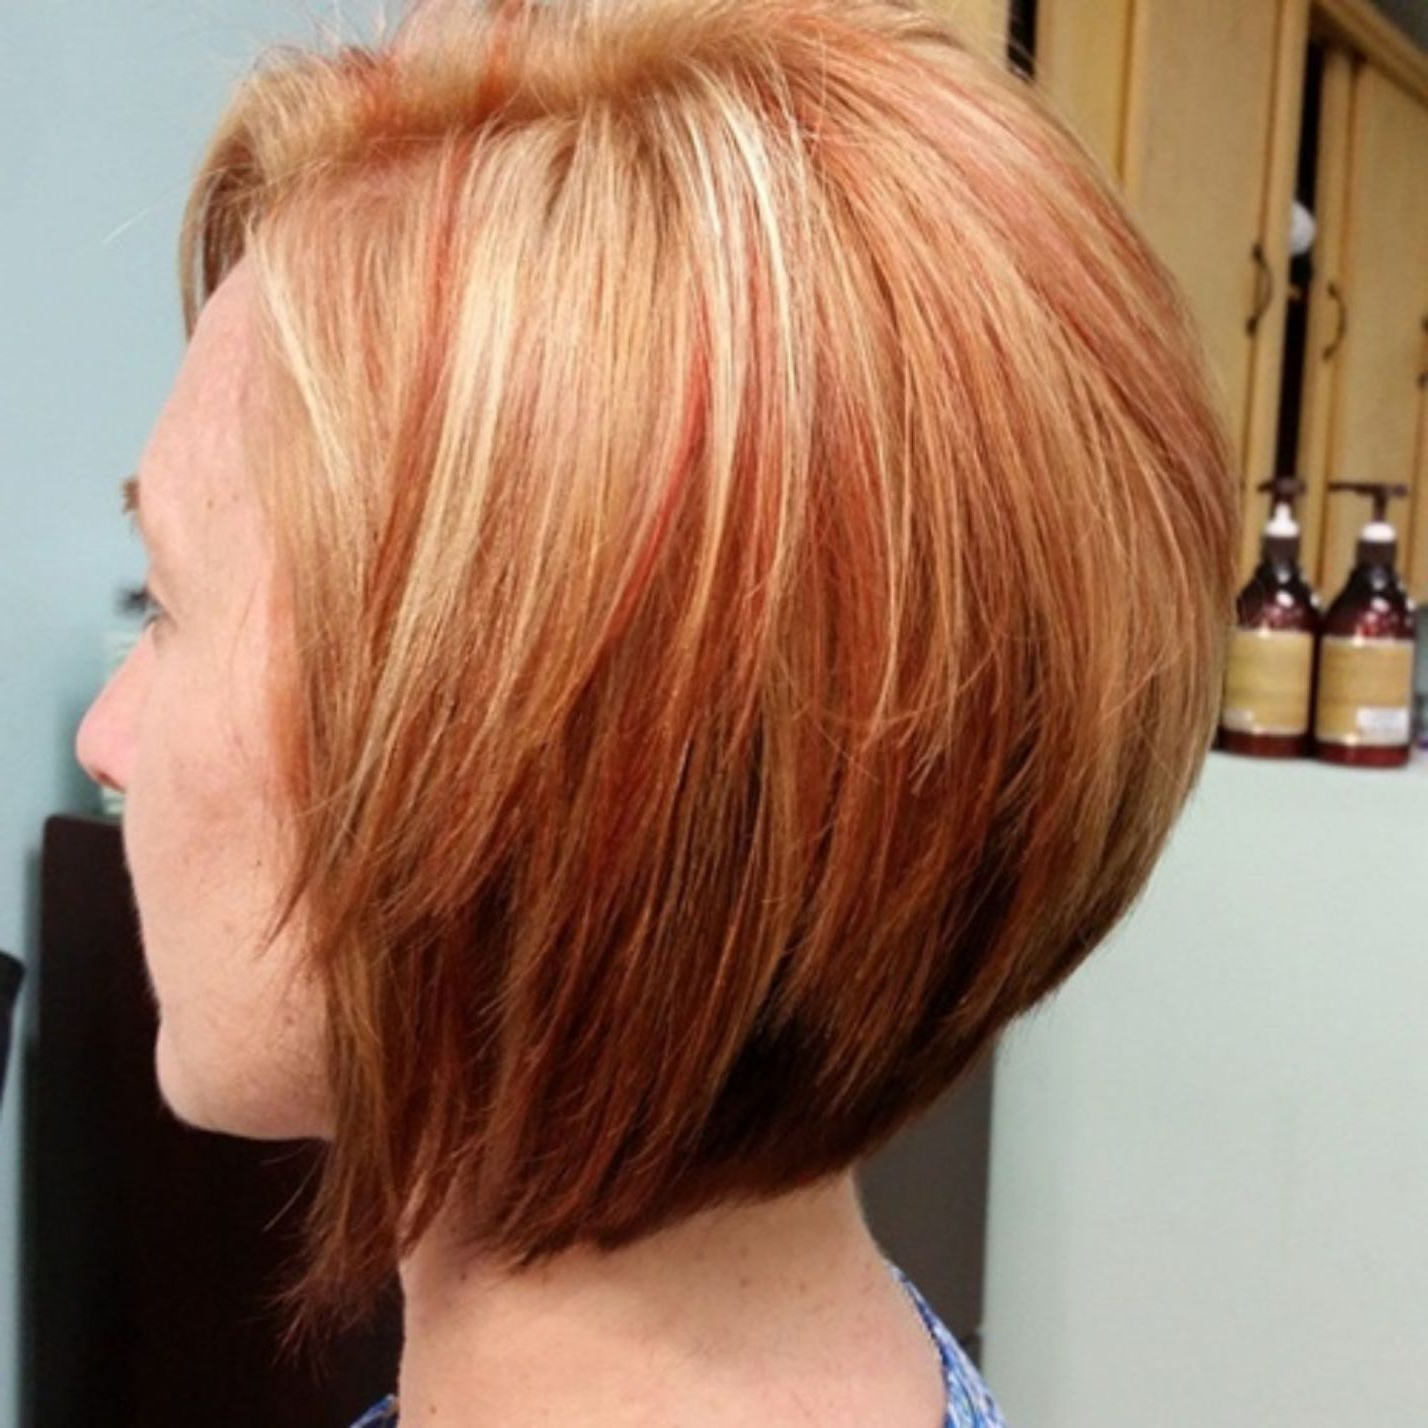 Blonde Bob For Latest Sassy Angled Blonde Bob Hairstyles (View 3 of 20)